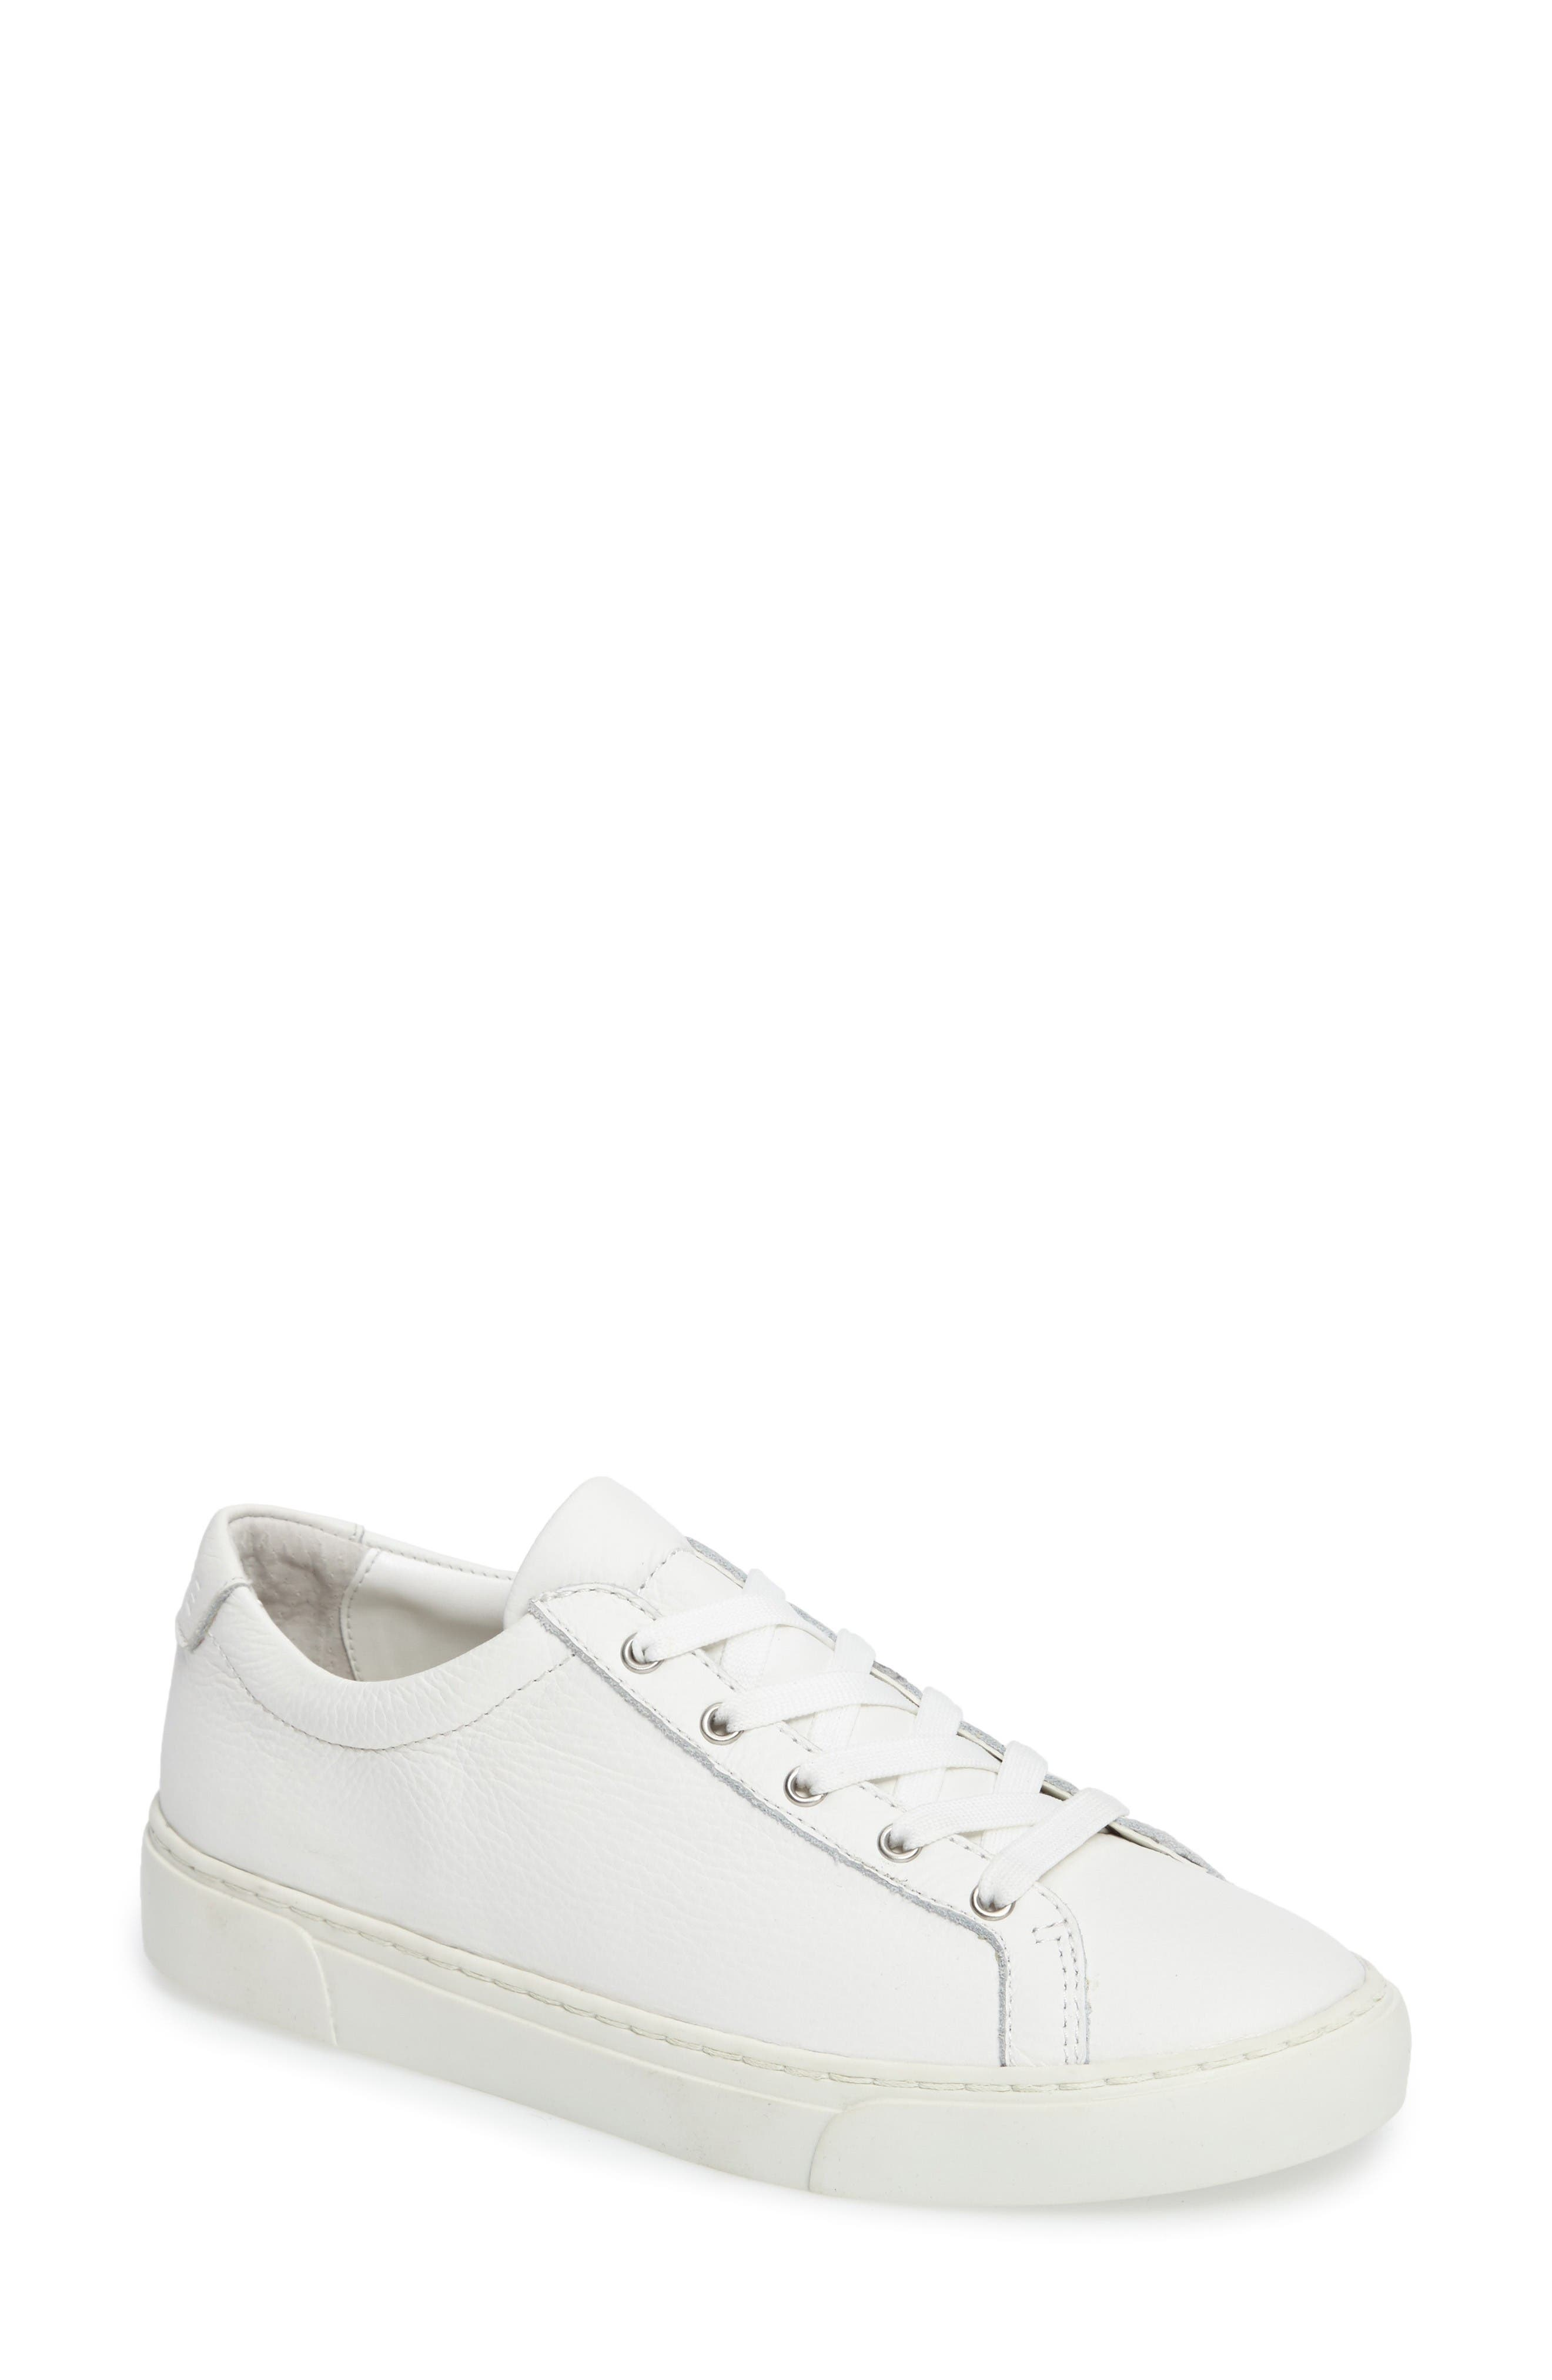 Alternate Image 1 Selected - 1.STATE Darrion Sneaker (Women)